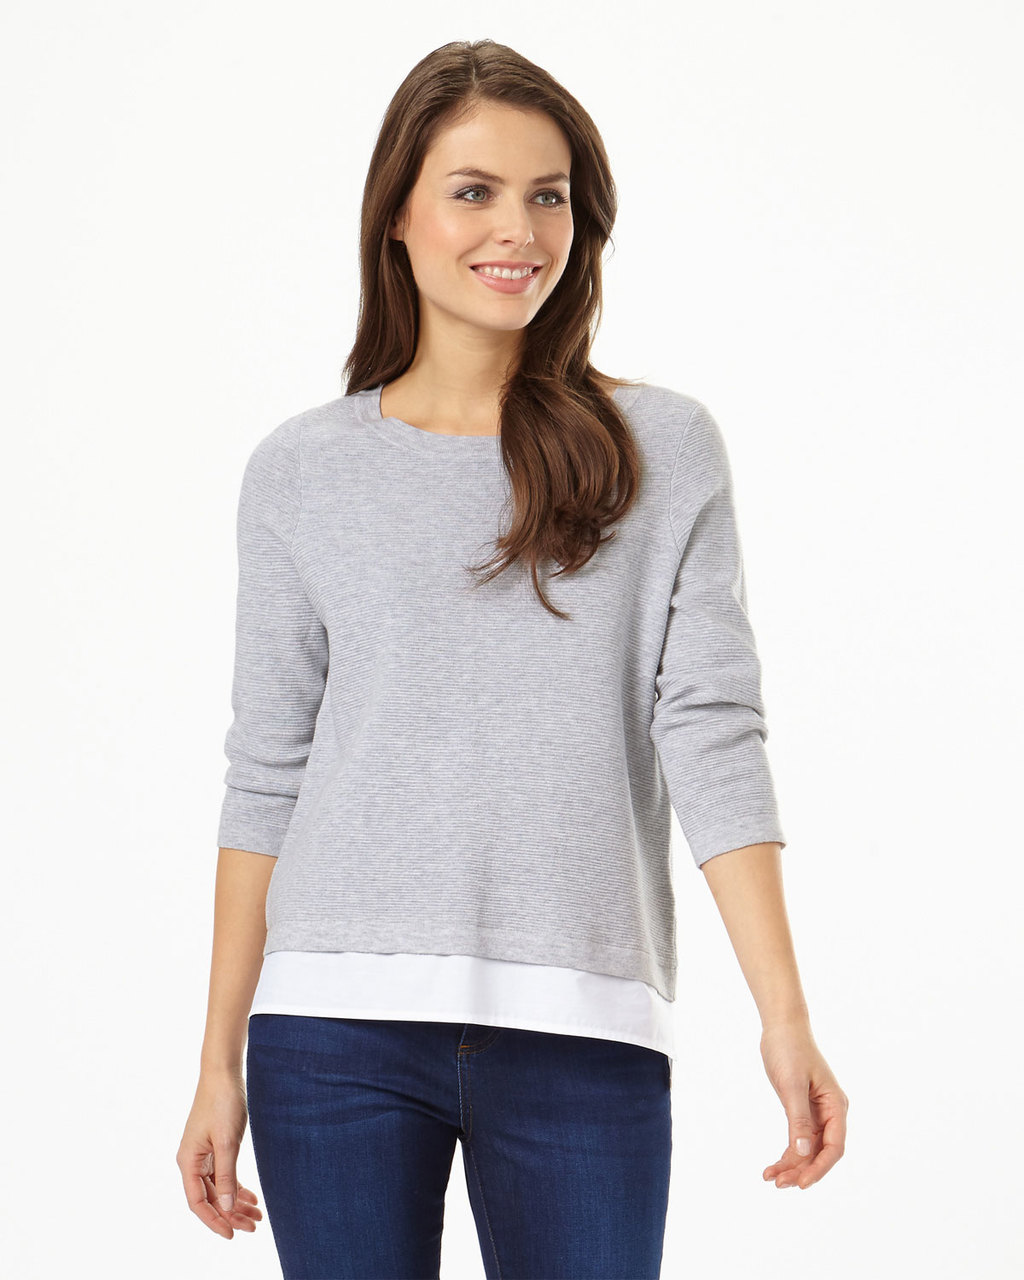 Rufina Ripple Stitch Knit - pattern: plain; style: standard; predominant colour: mid grey; occasions: casual; length: standard; fibres: acrylic - mix; fit: slim fit; neckline: crew; sleeve length: long sleeve; sleeve style: standard; texture group: knits/crochet; pattern type: fabric; season: s/s 2016; wardrobe: basic